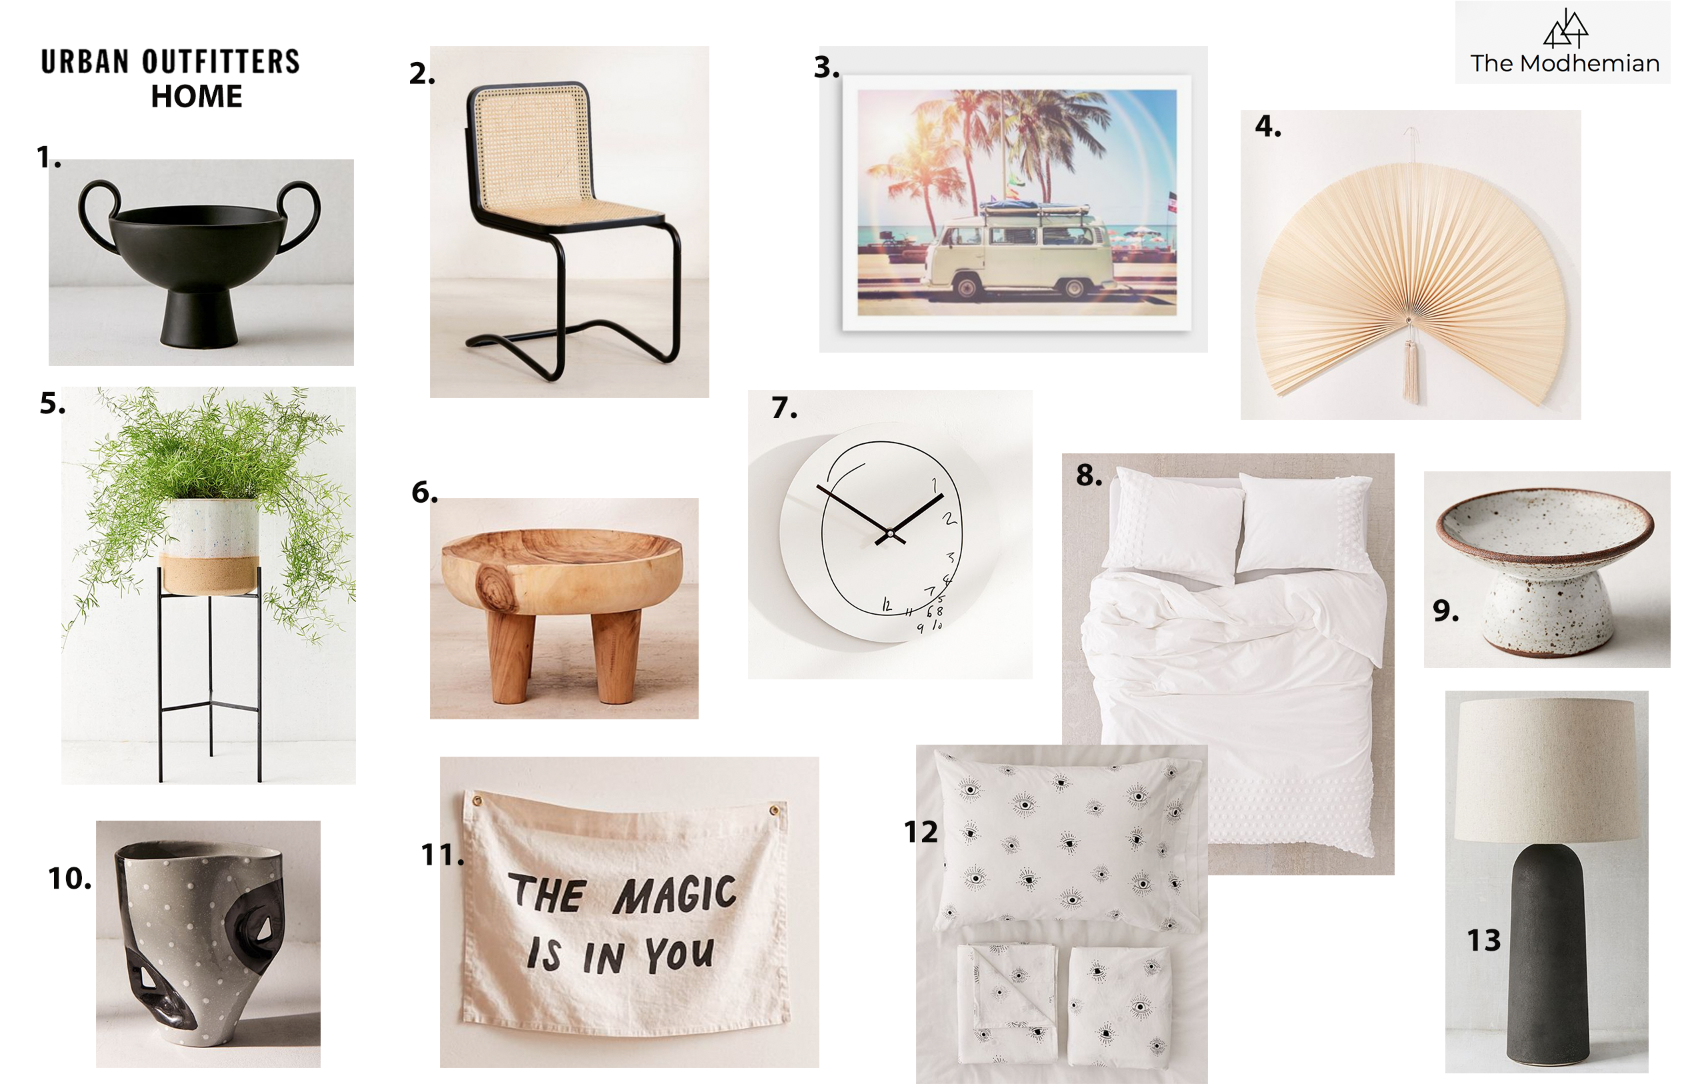 the modhemian's urban outfitters home round up